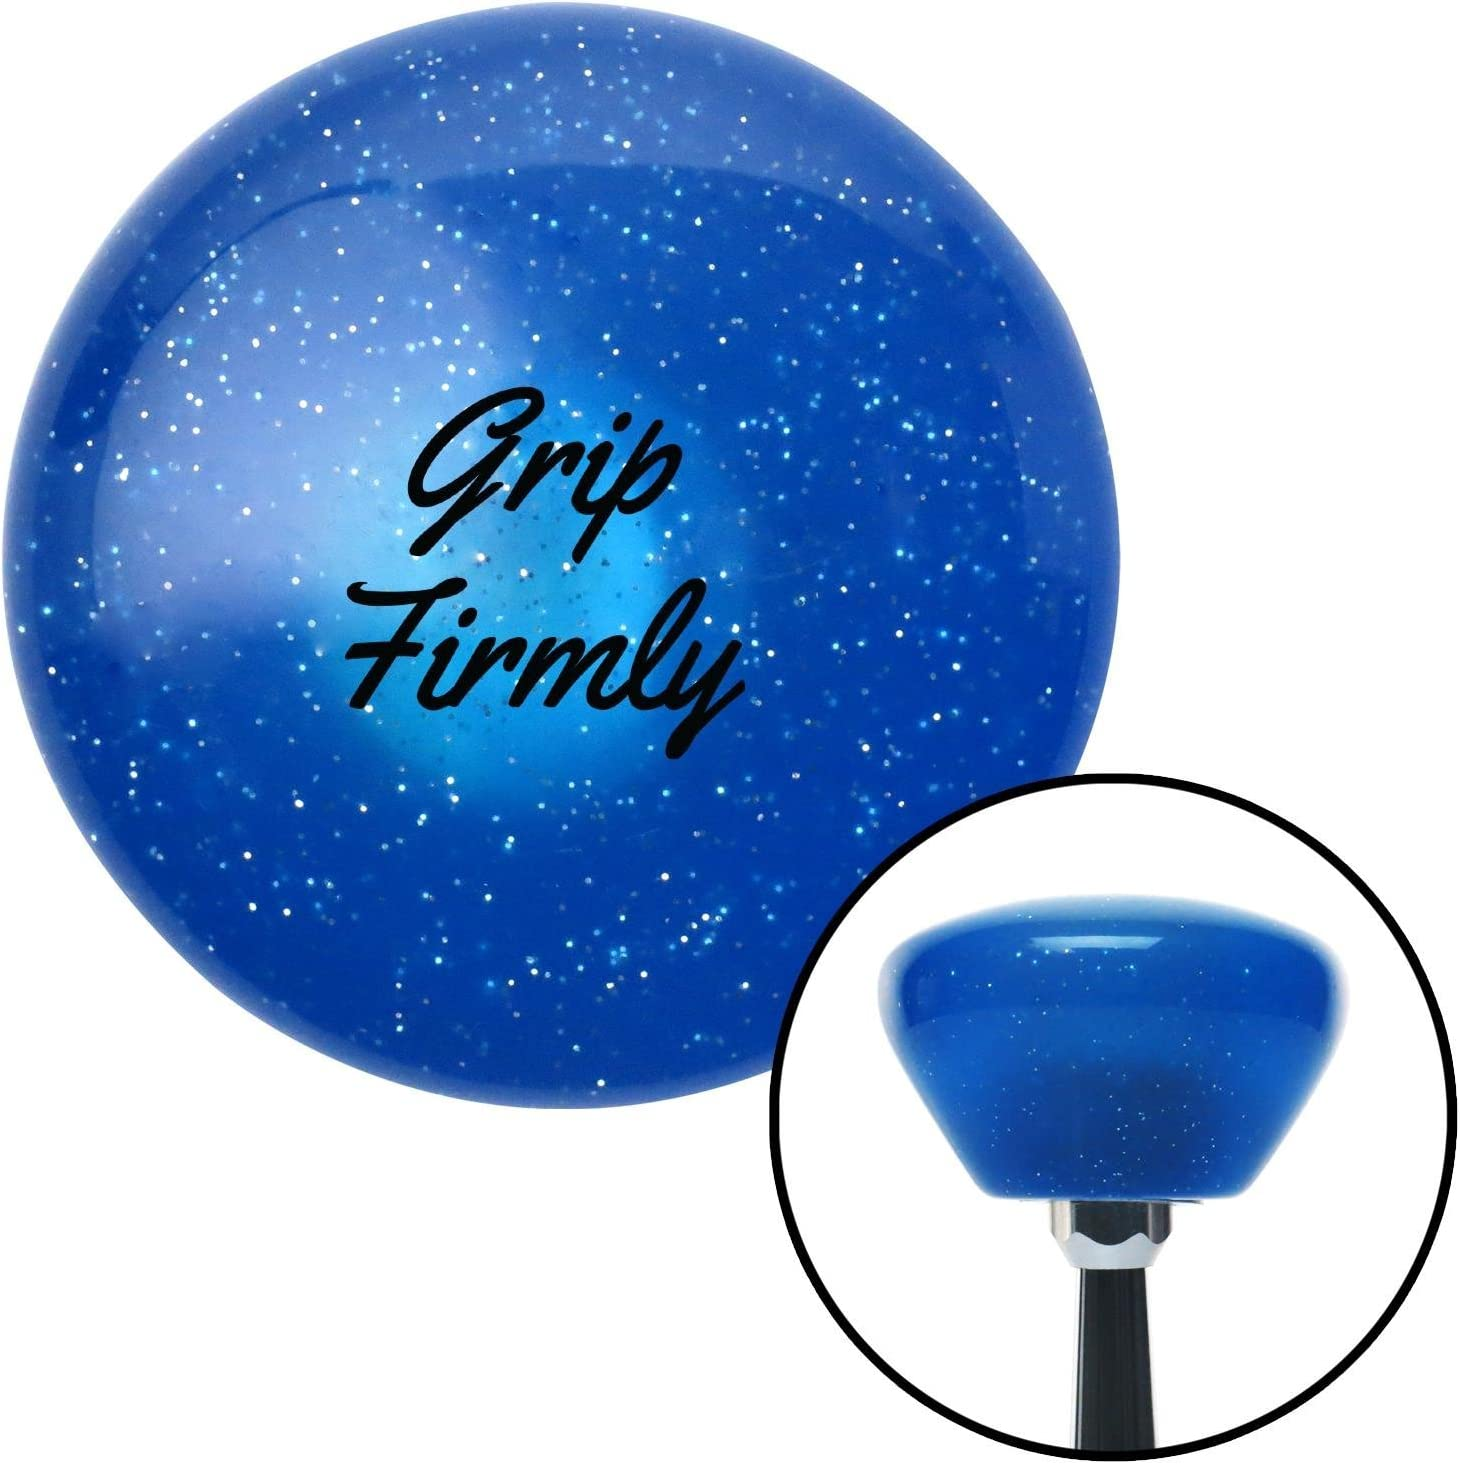 American Shifter 192448 Blue Retro Metal Flake Shift Knob with M16 x 1.5 Insert Black Grip Firmly